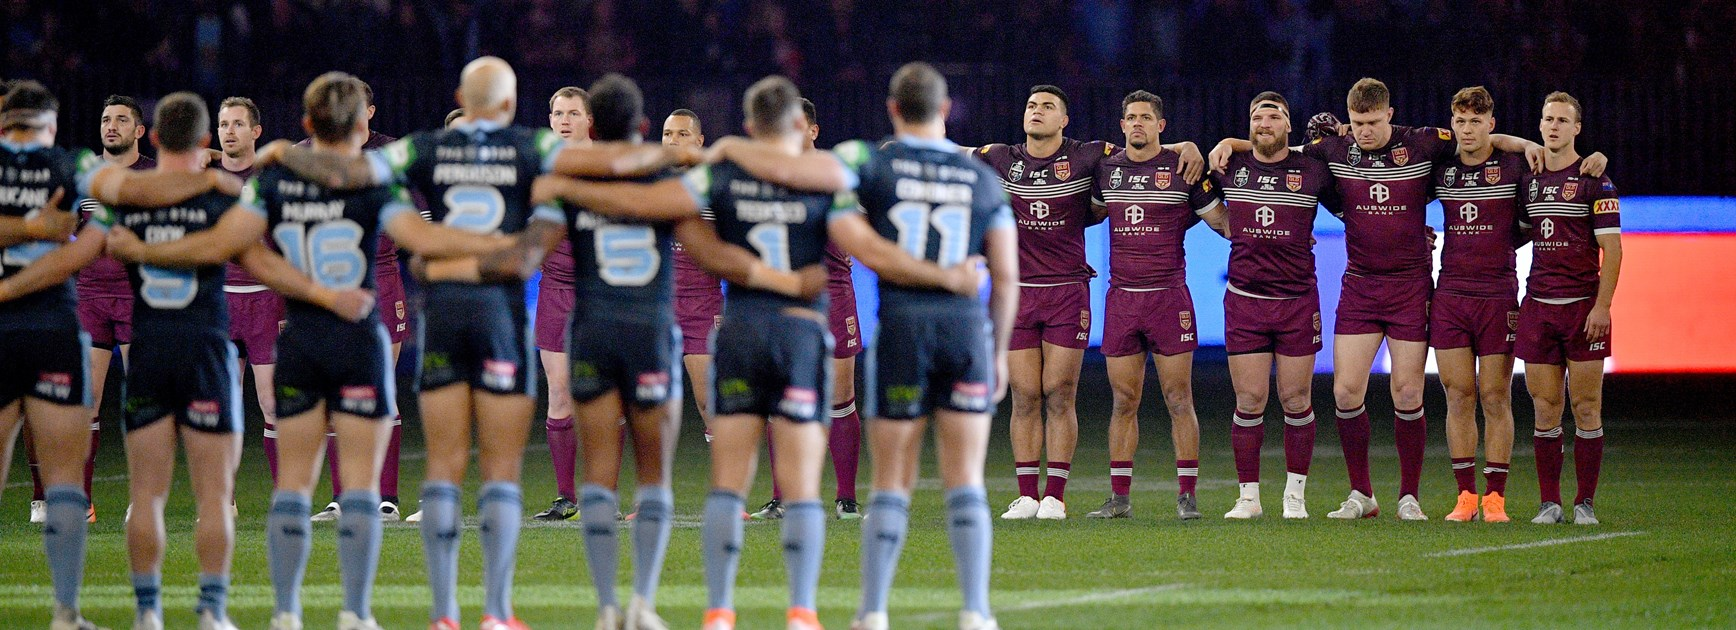 Maroons Origin 3 team options: Morgan firming to replace Ponga